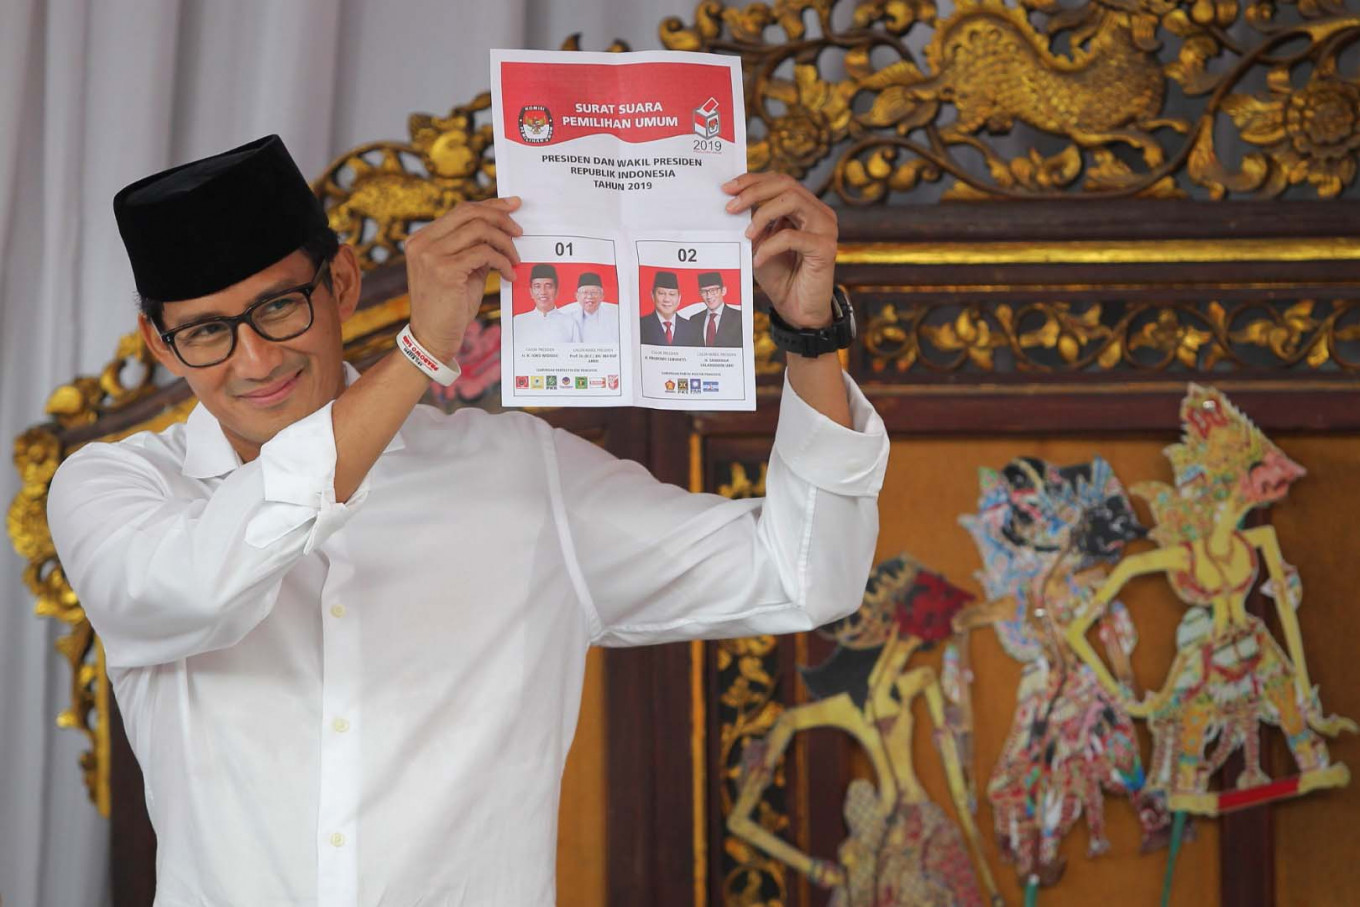 Congratulations to the President: Sandiaga